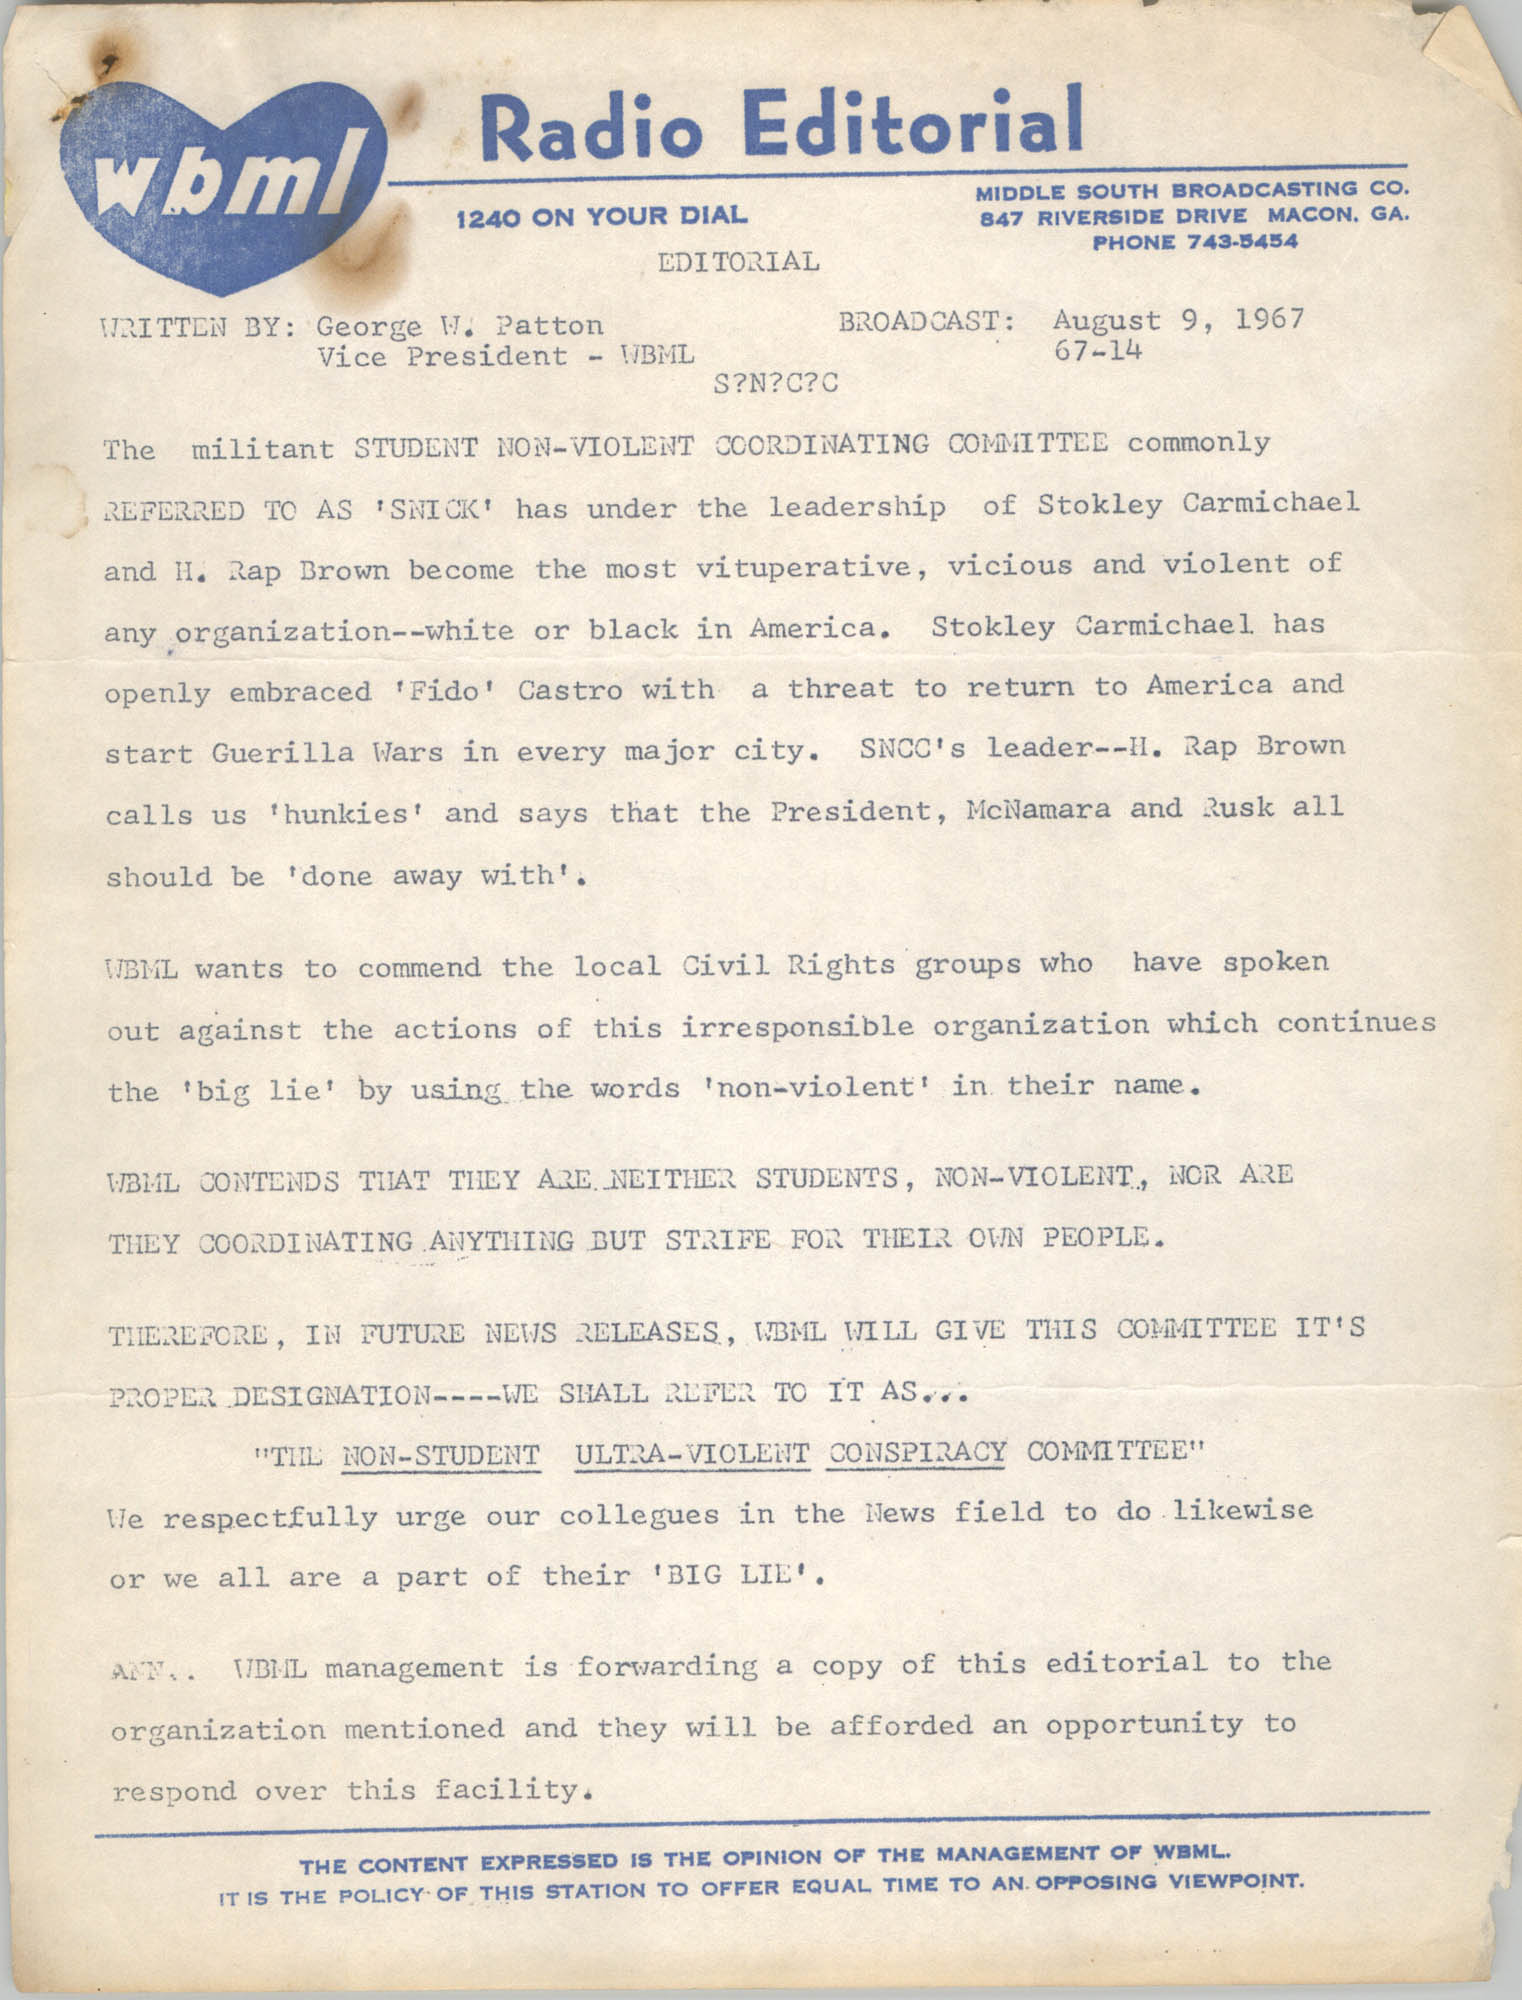 Correspondence from George W. Patton to Student Nonviolent Coordinating Committee, August 9, 1967